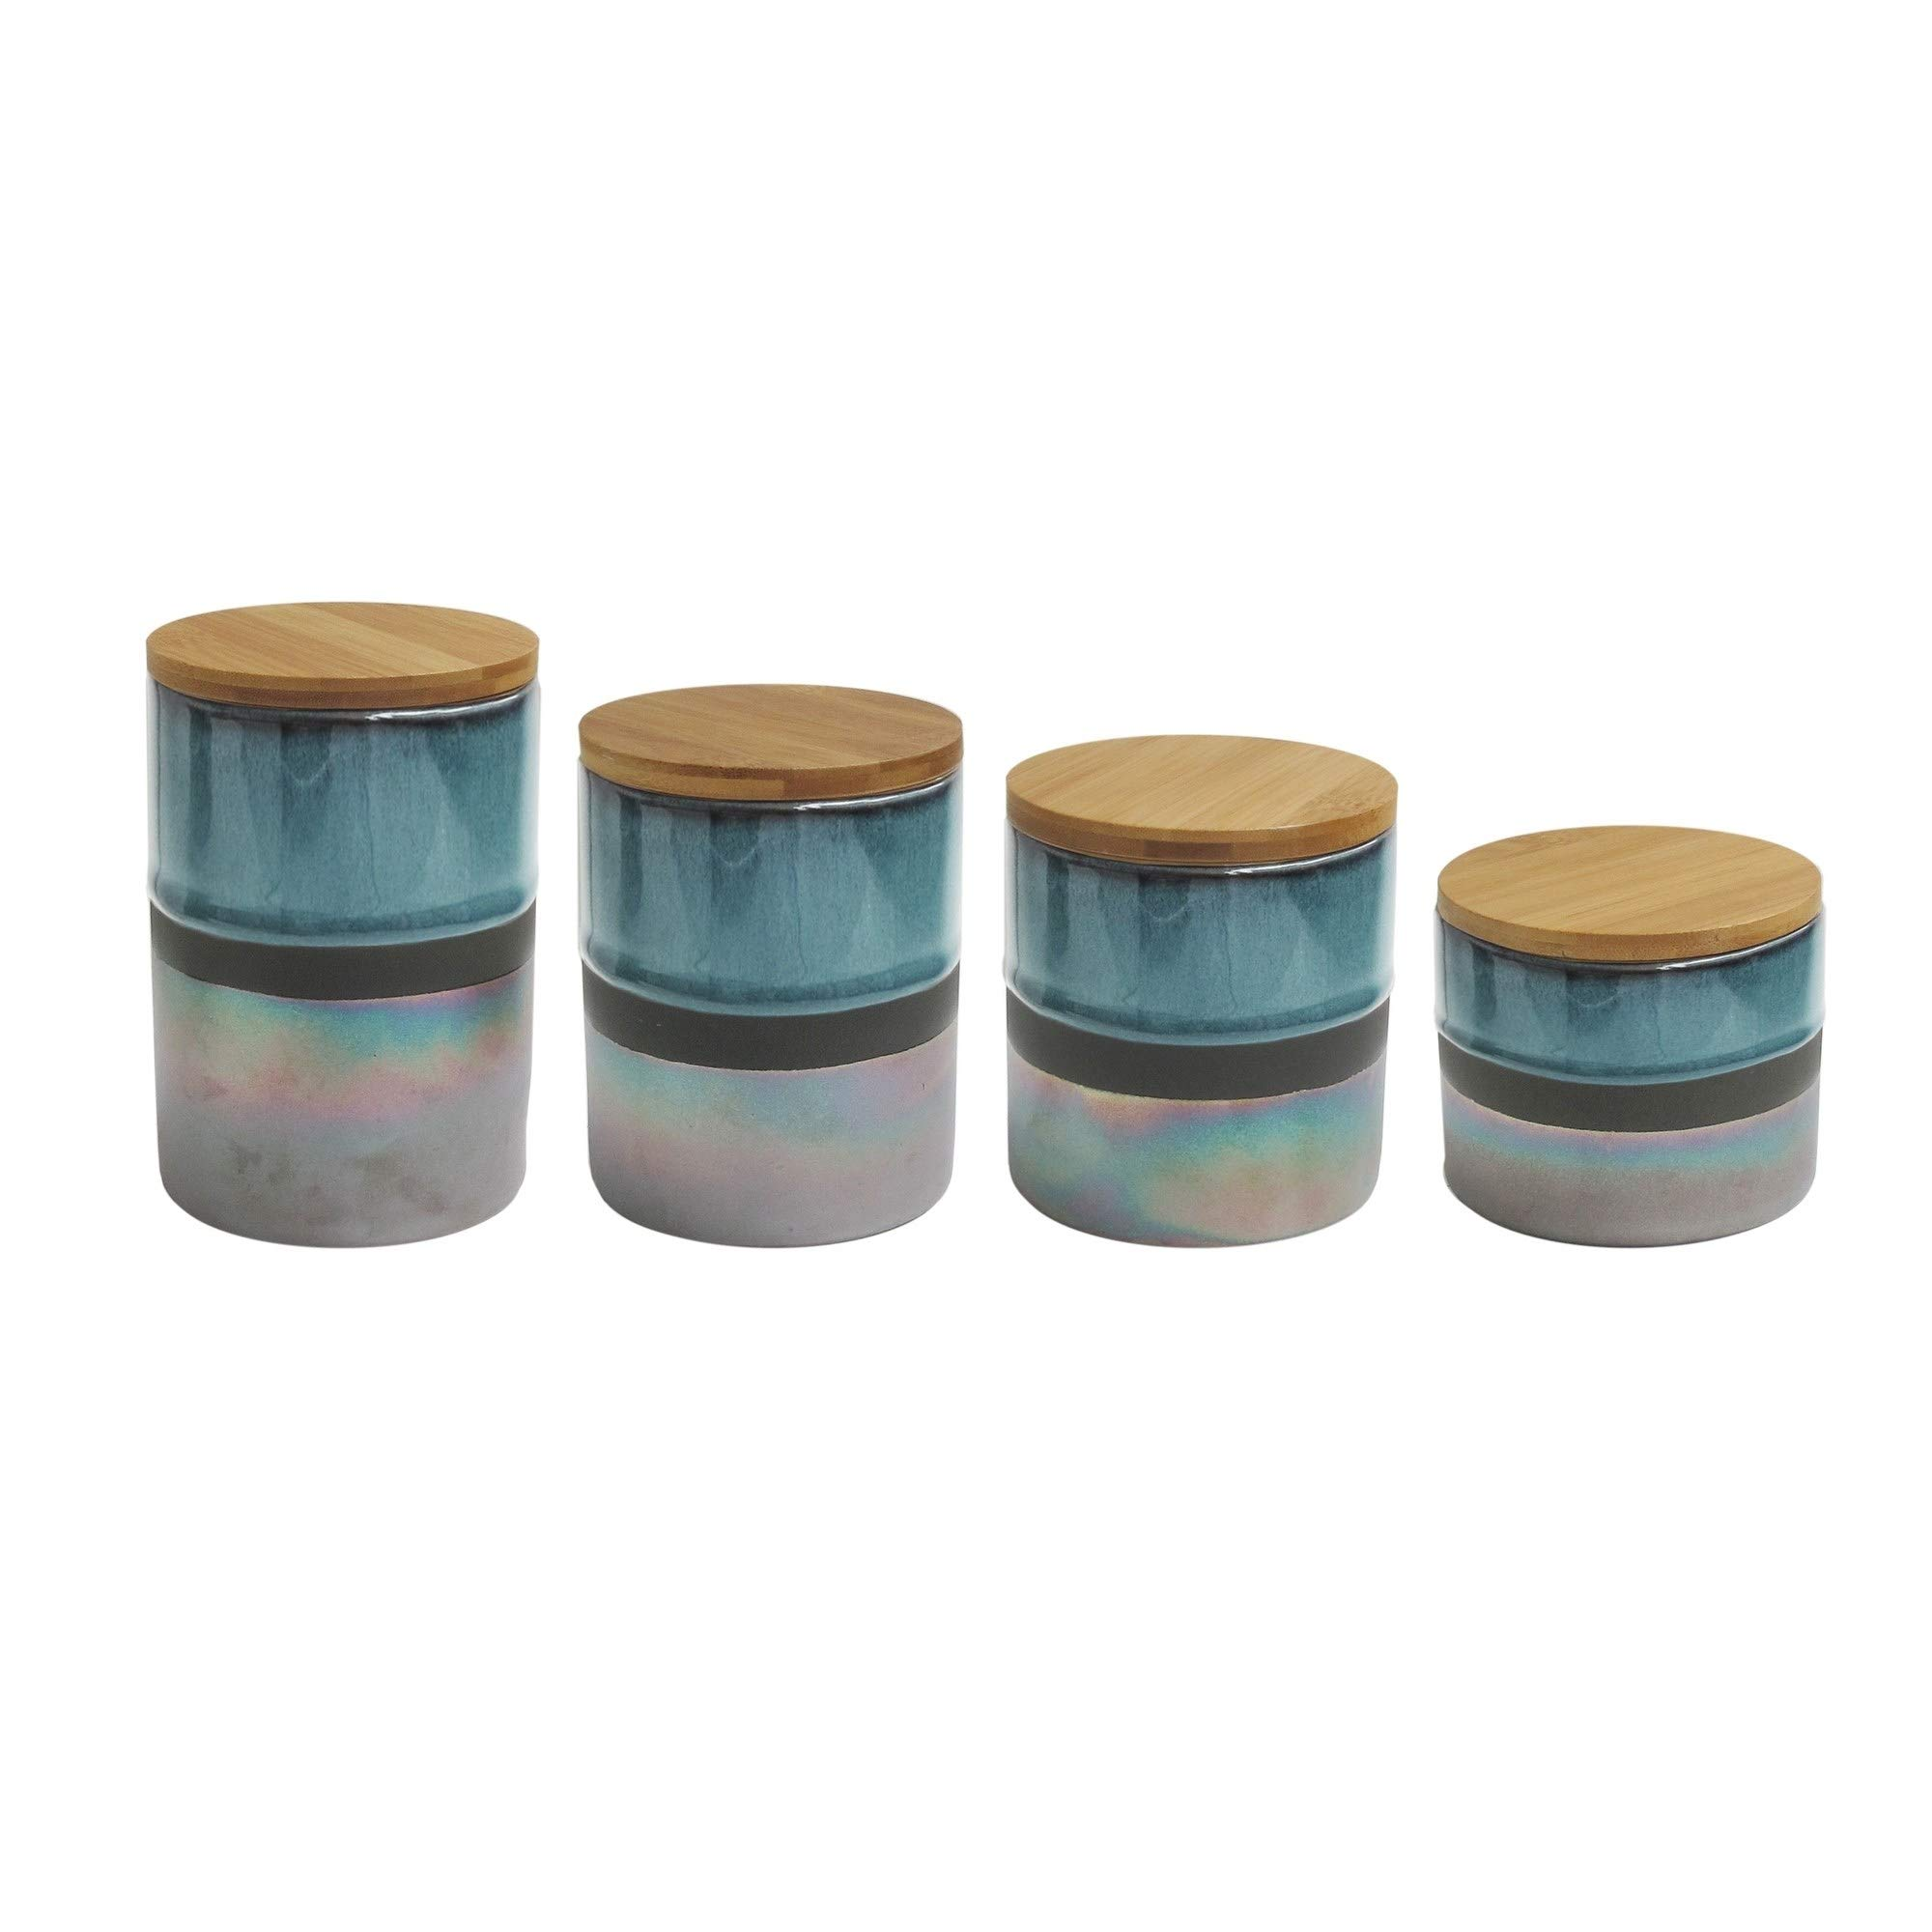 4 pc Canister Set, Teal Green Opal Stripe Pattern Multiple Sizes Four Piece Ceramic Fancy Kitchen Canisters Shabby Chic, Aqua Blue Silver Solid Stripe Tabletop Storage Containers Room Decor, Stoneware